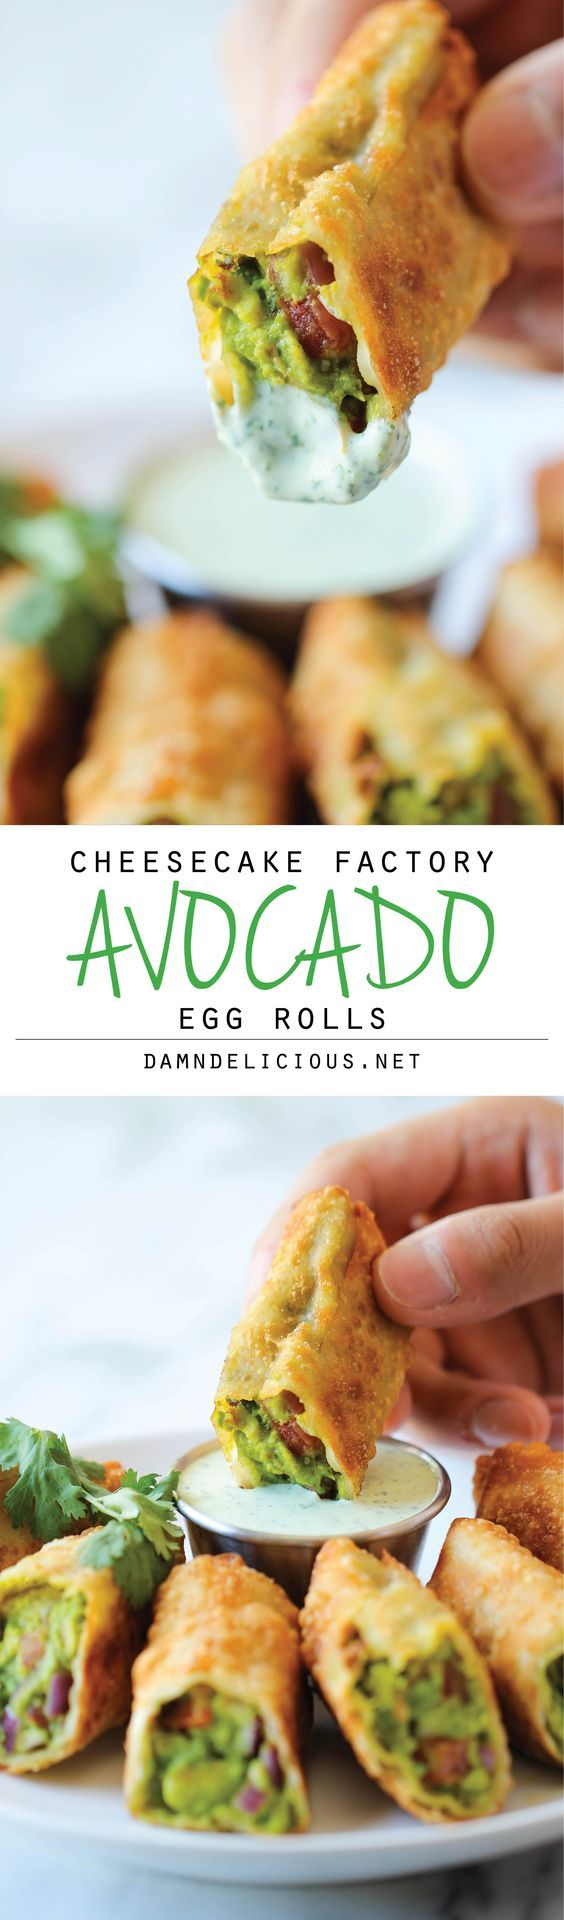 Avocado Frühlingsrollen Selber Machen *** Cheesecake Factory Avocado Egg Rolls - It's so much cheaper to make right at home and it tastes a million times better too!